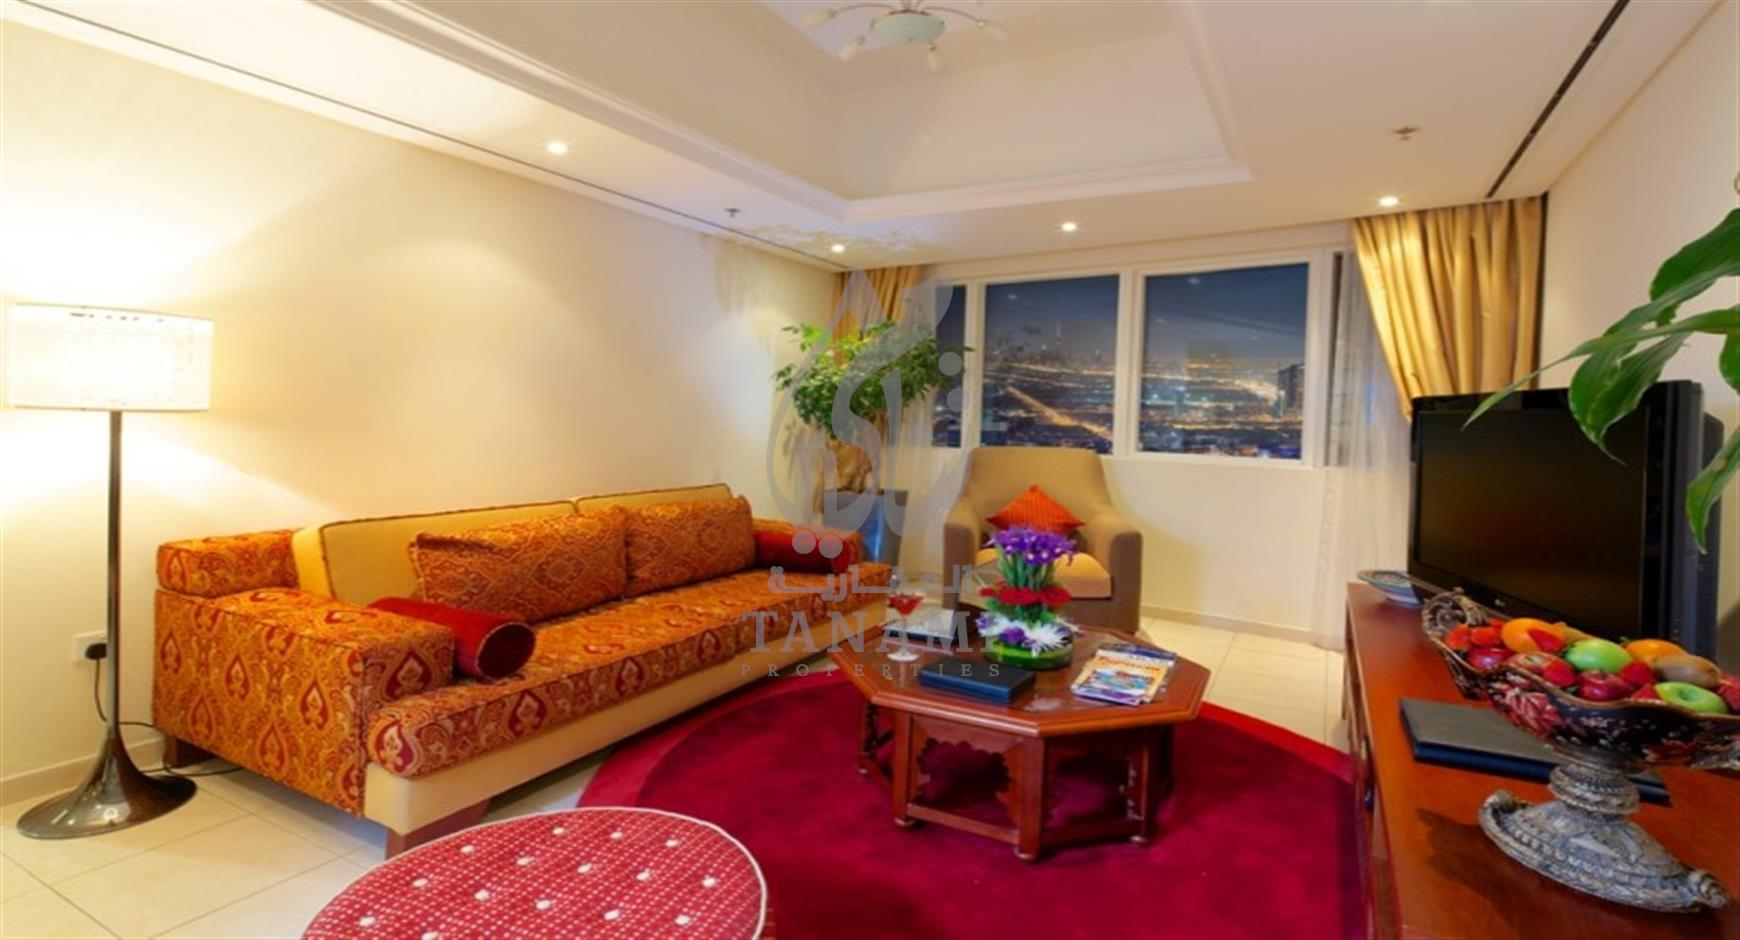 3 Bedroom Furnished Hotel Apartment